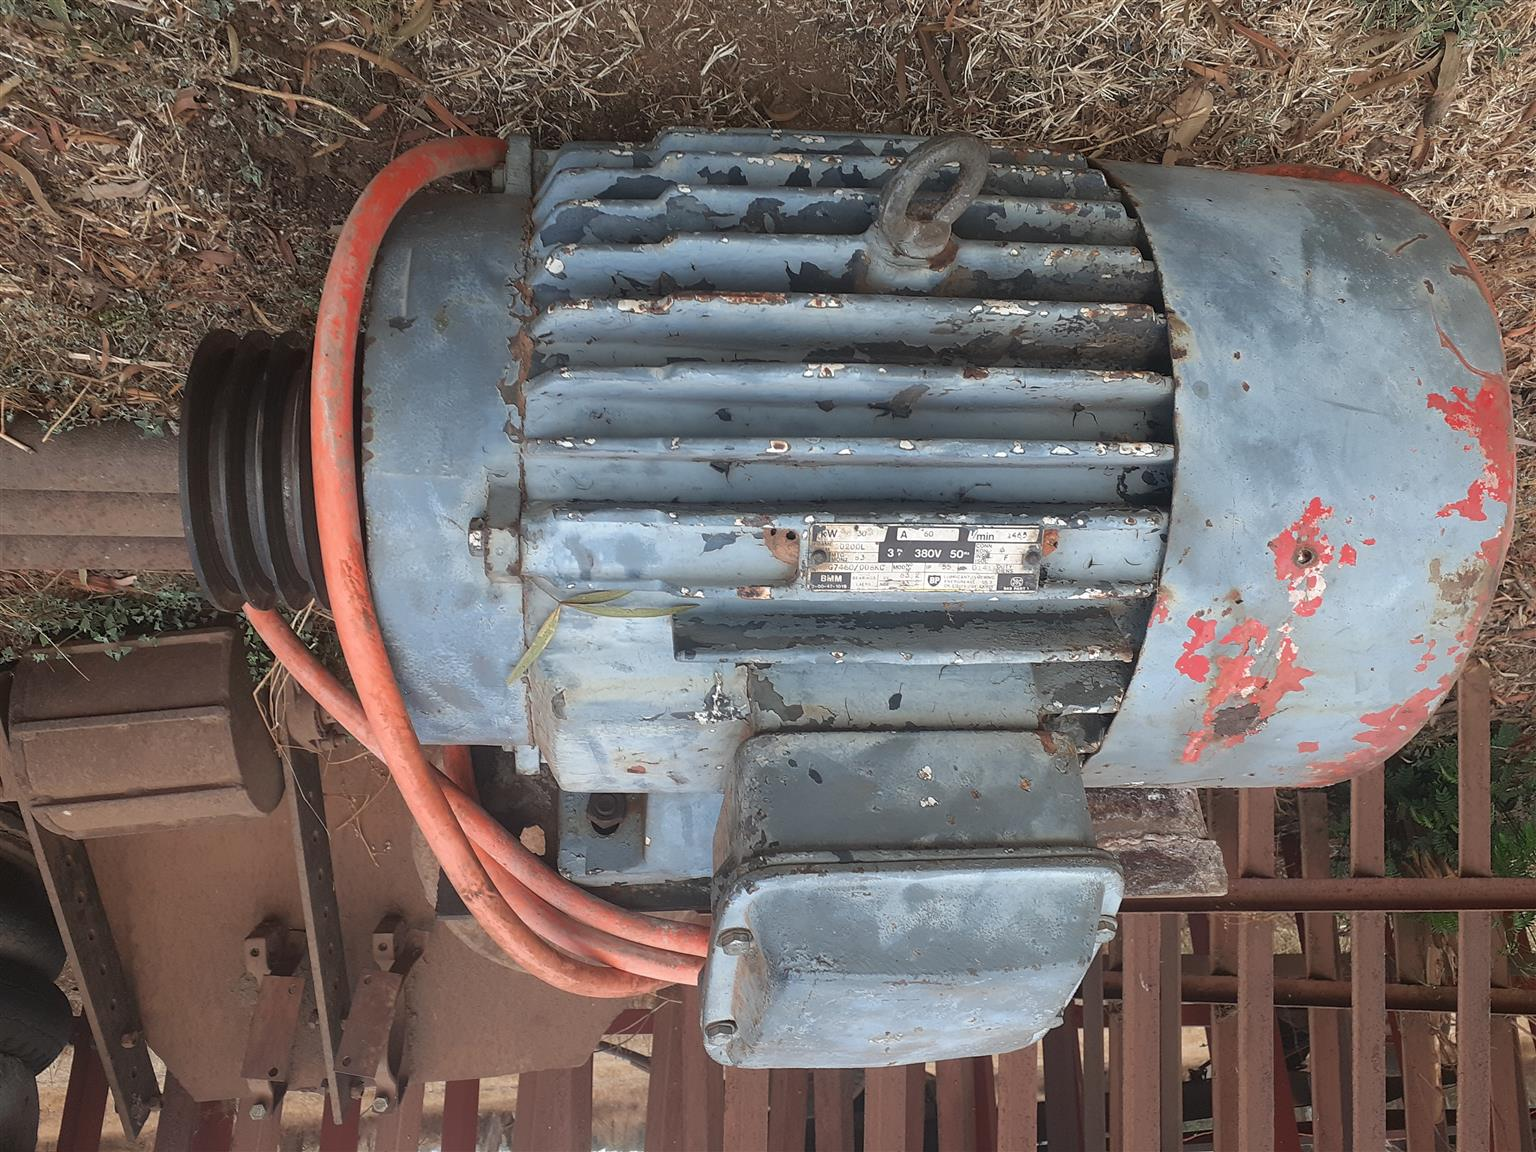 Mono water pump 4 inch mono meester  complete 13 pipes with b65 unit 30 kw electric motor